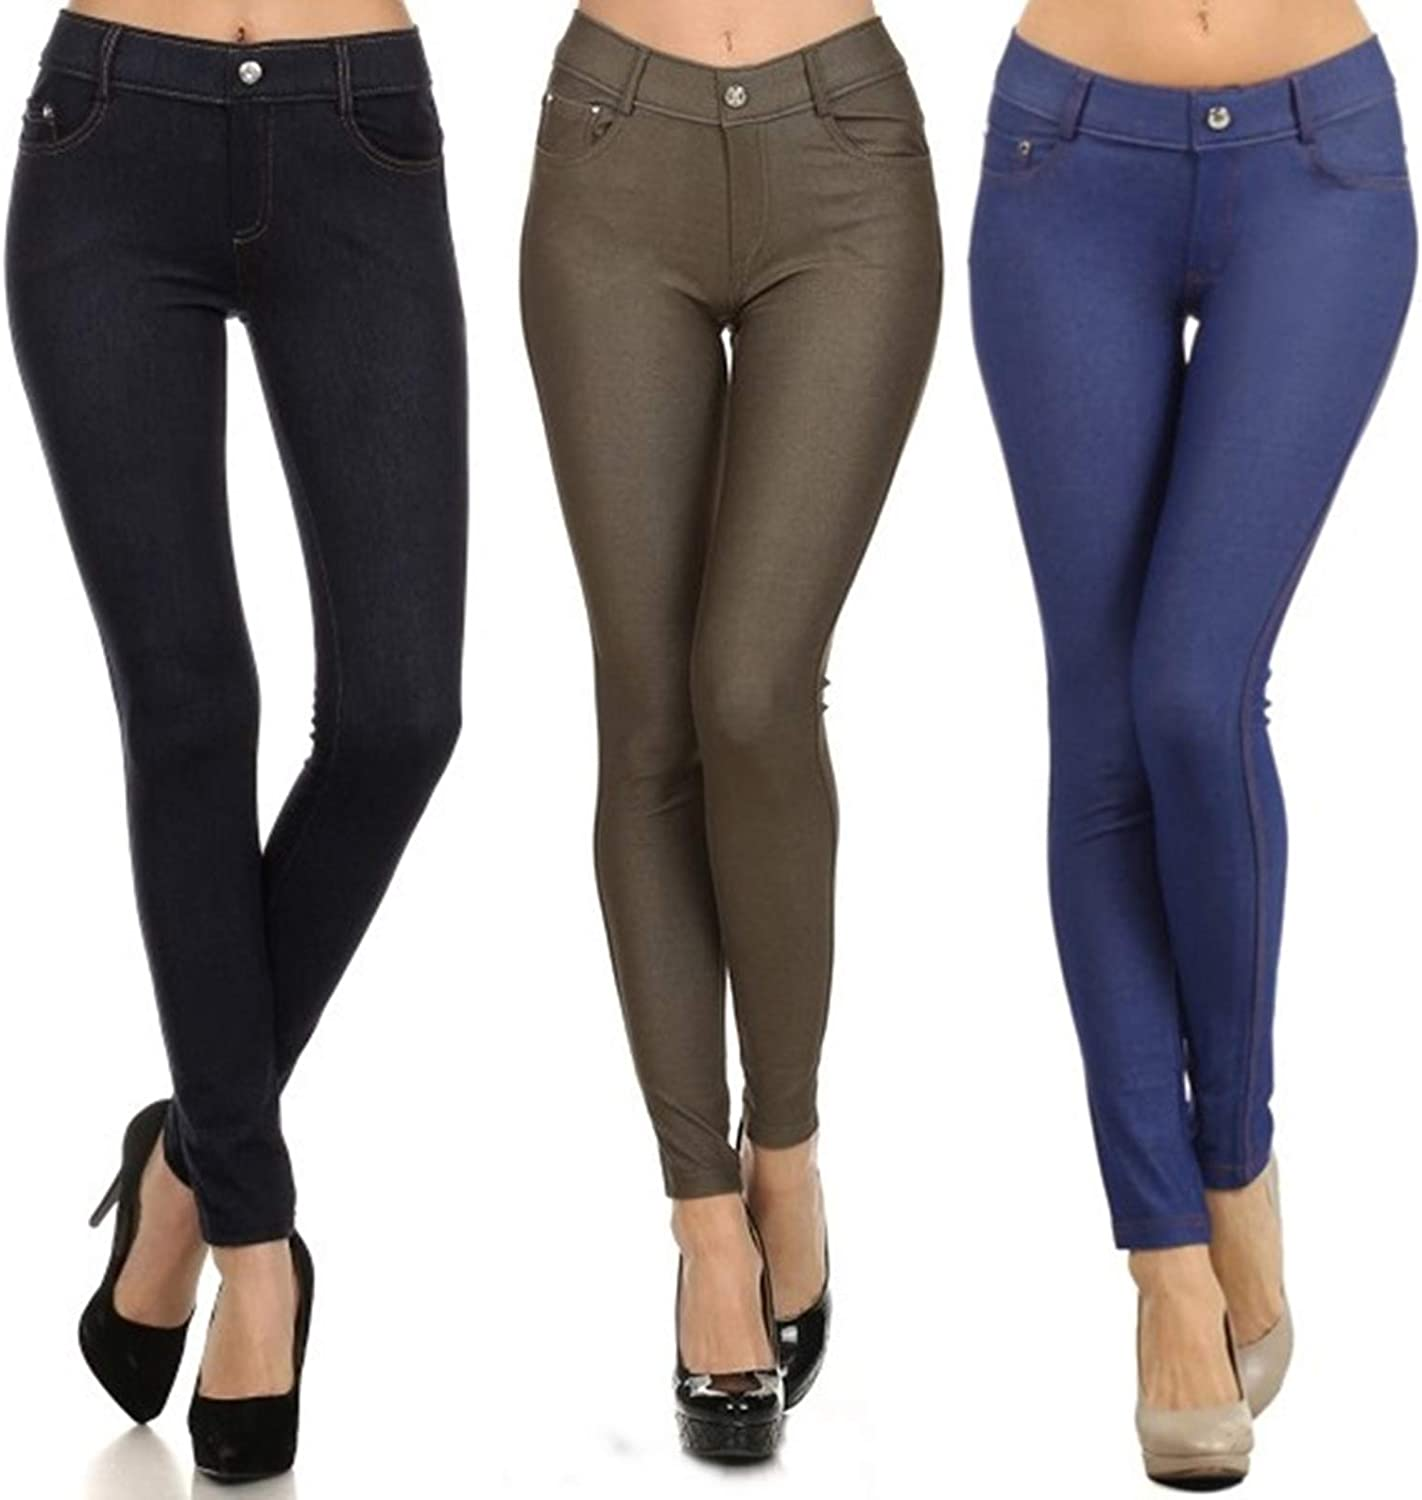 Yelete Multi Solid Color Jeggings for Women Soft and Stretchy Legging